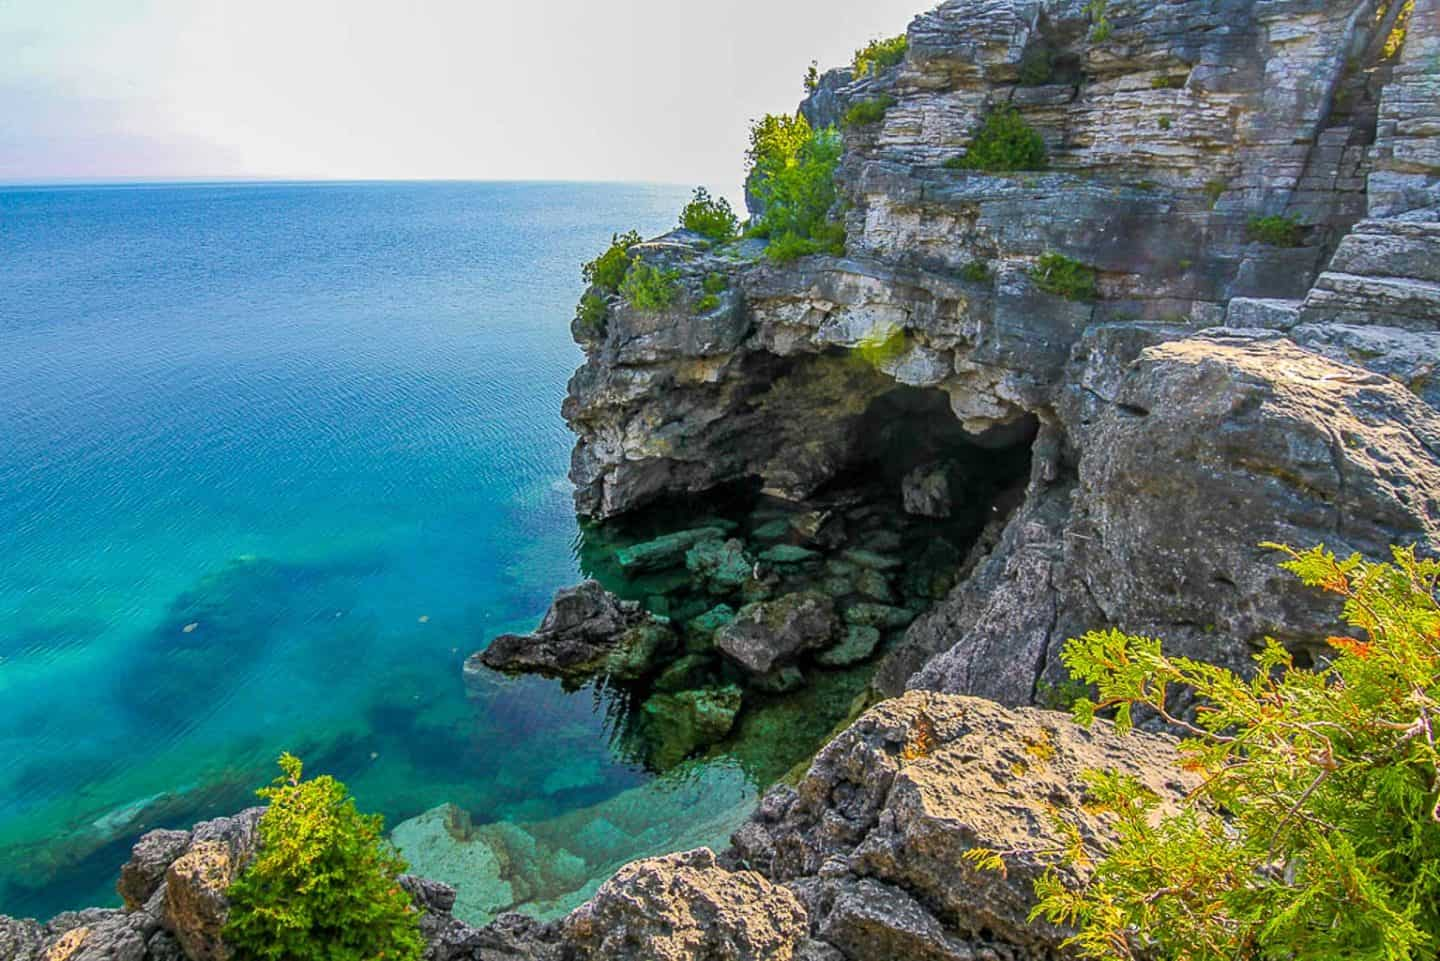 Bruce Peninsula National Park is one of the best national parks in Canada